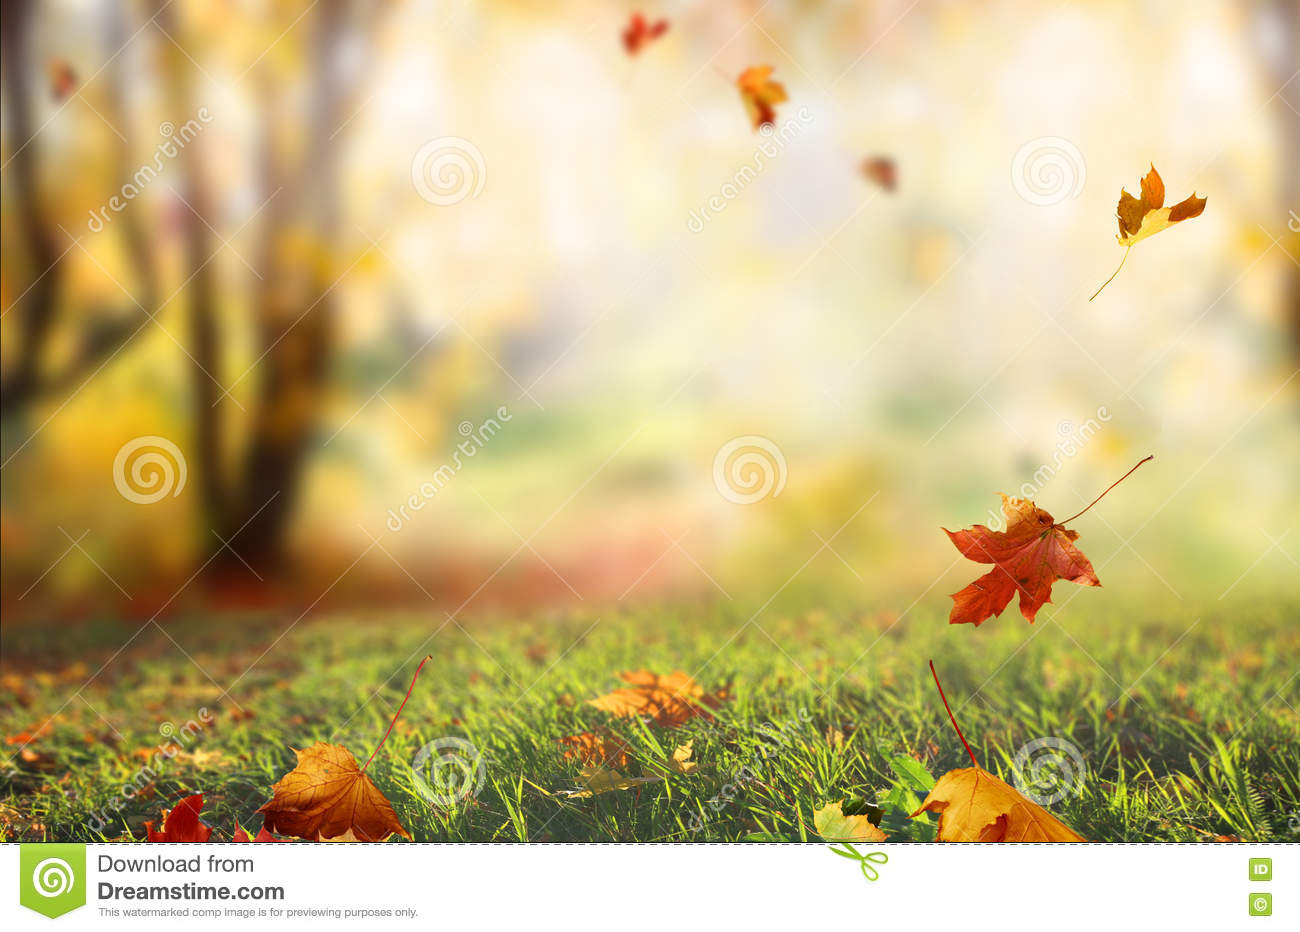 falling leaves natural background stock photo image of abstract  blur 77752522 fall leaves border clip art free fall leaves border clip art black and white